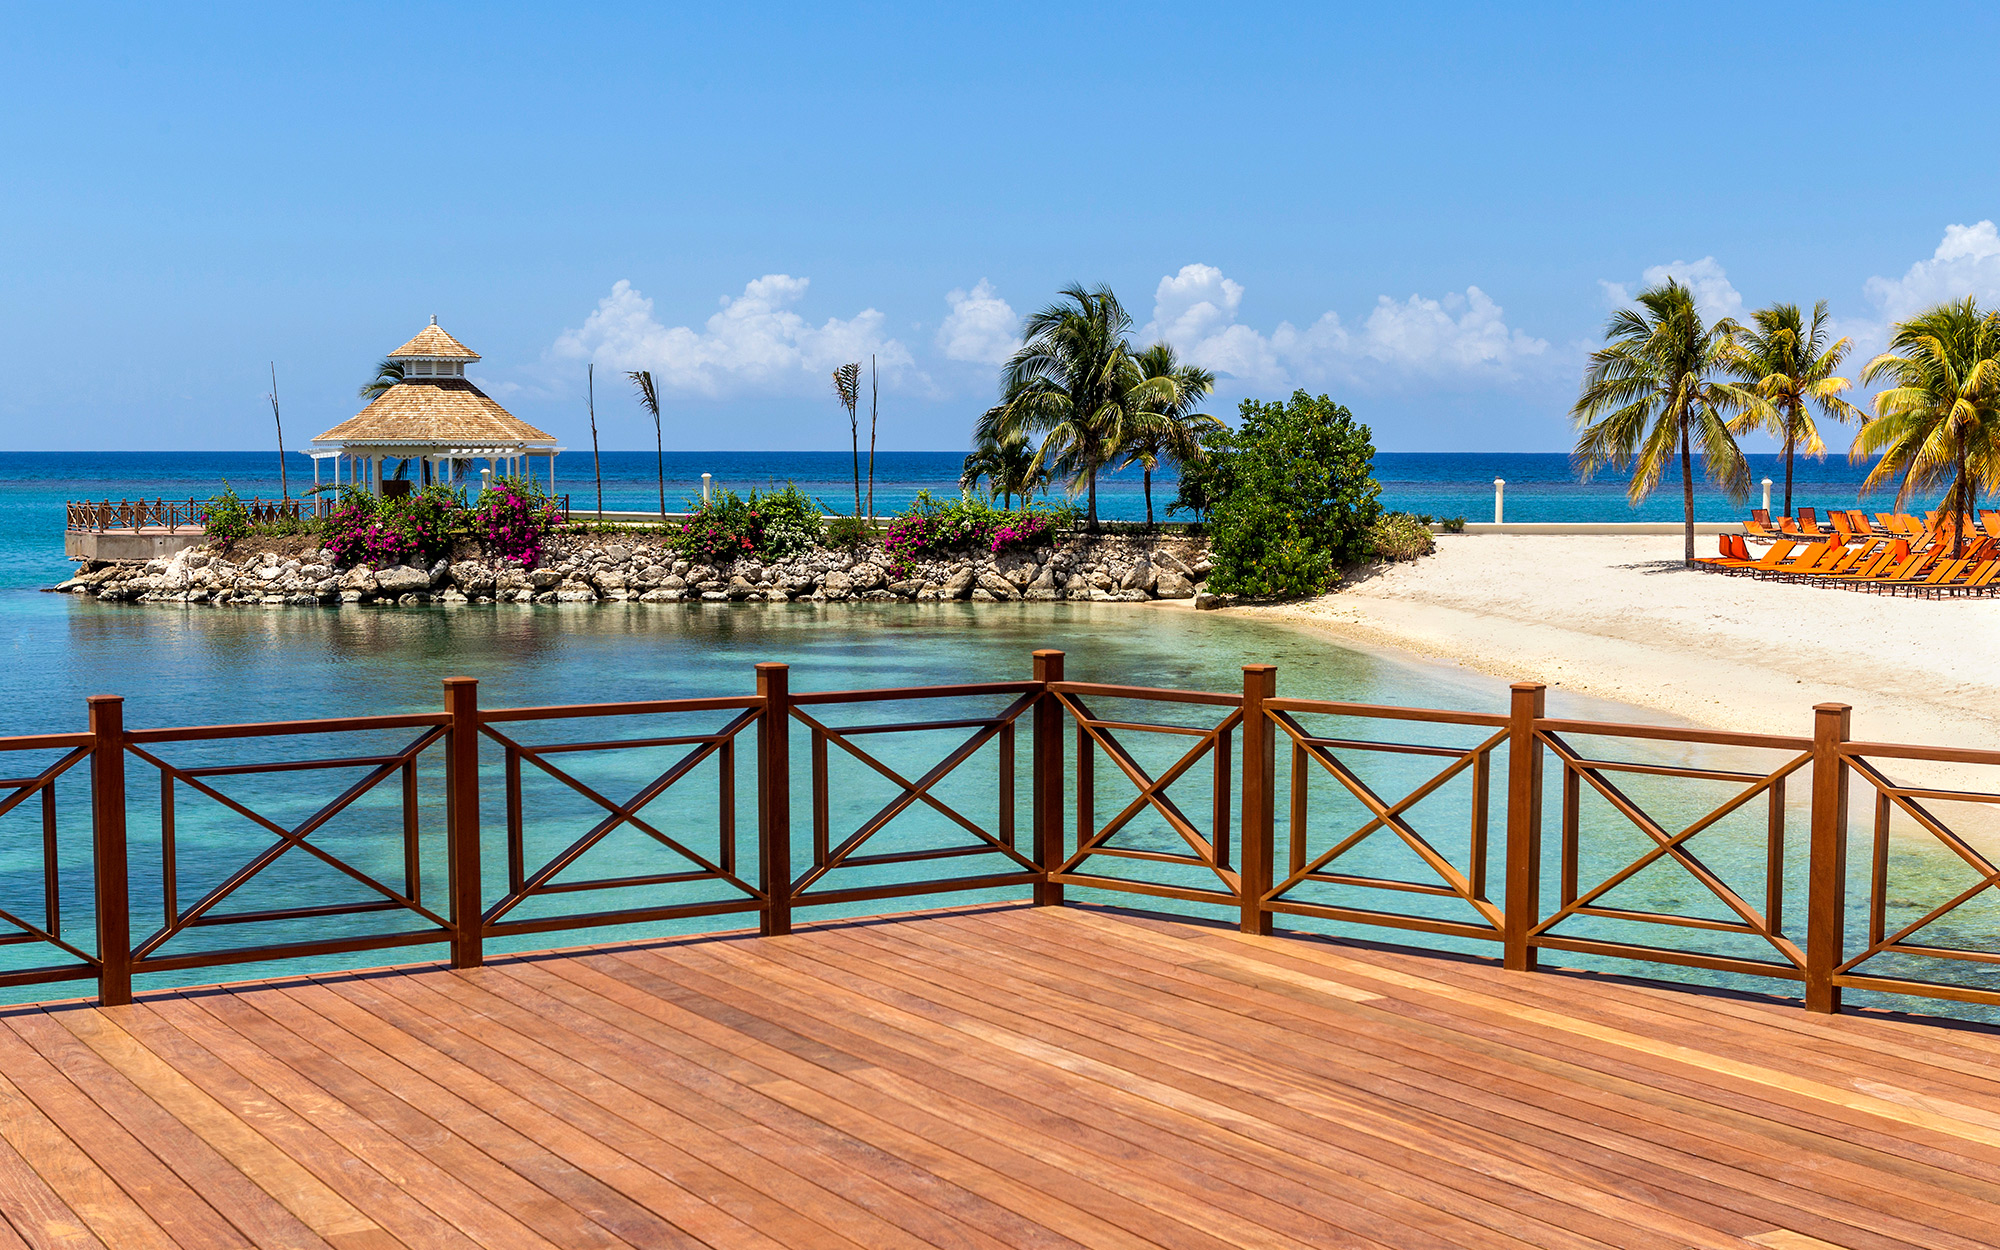 Caribbean Group Getaways: Moon Palace Jamaica Grande in Jamaica